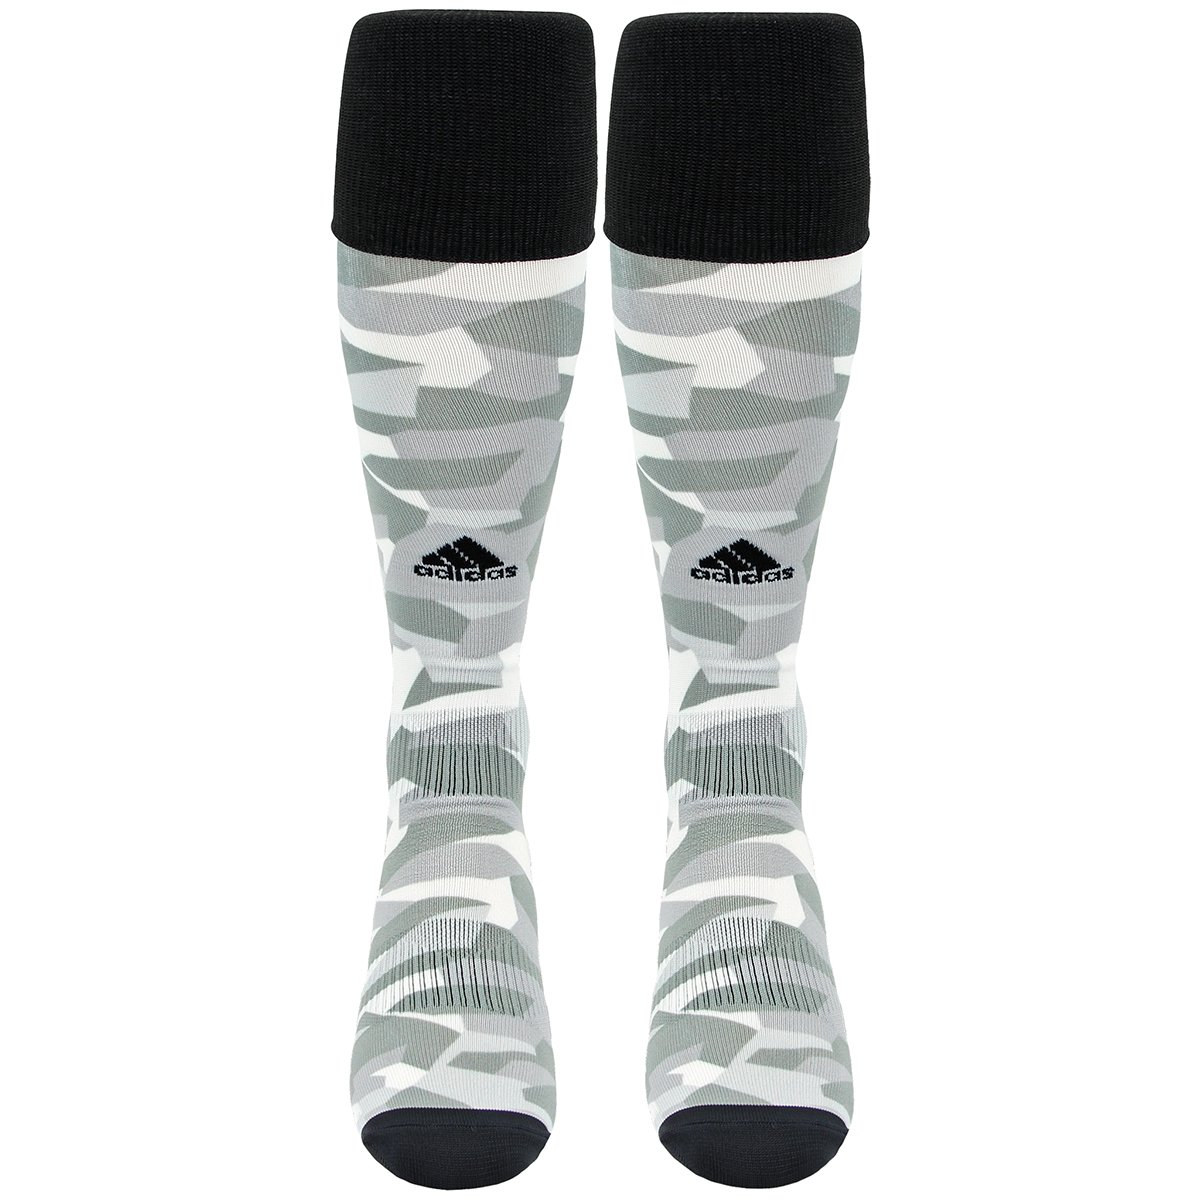 61a8fc6c6642 adidas Metro IV OTC Soccer Socks - 0-64353   Sports   Fitness Features    Sports   Outdoors - tibs